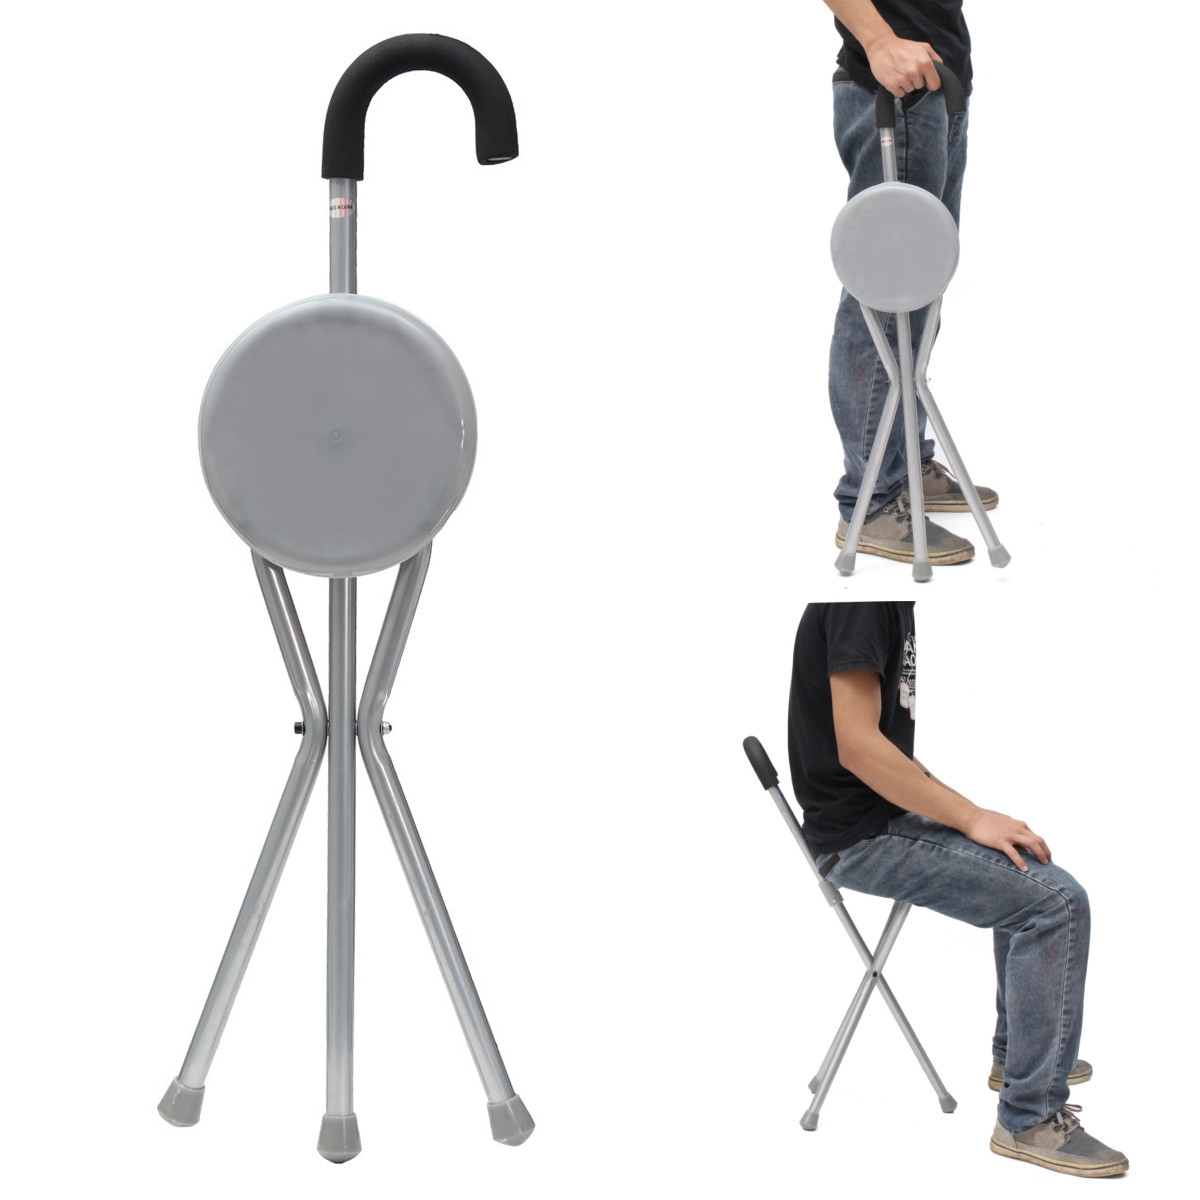 Compare Oxford Portable Telescopic Stool Travel Walking